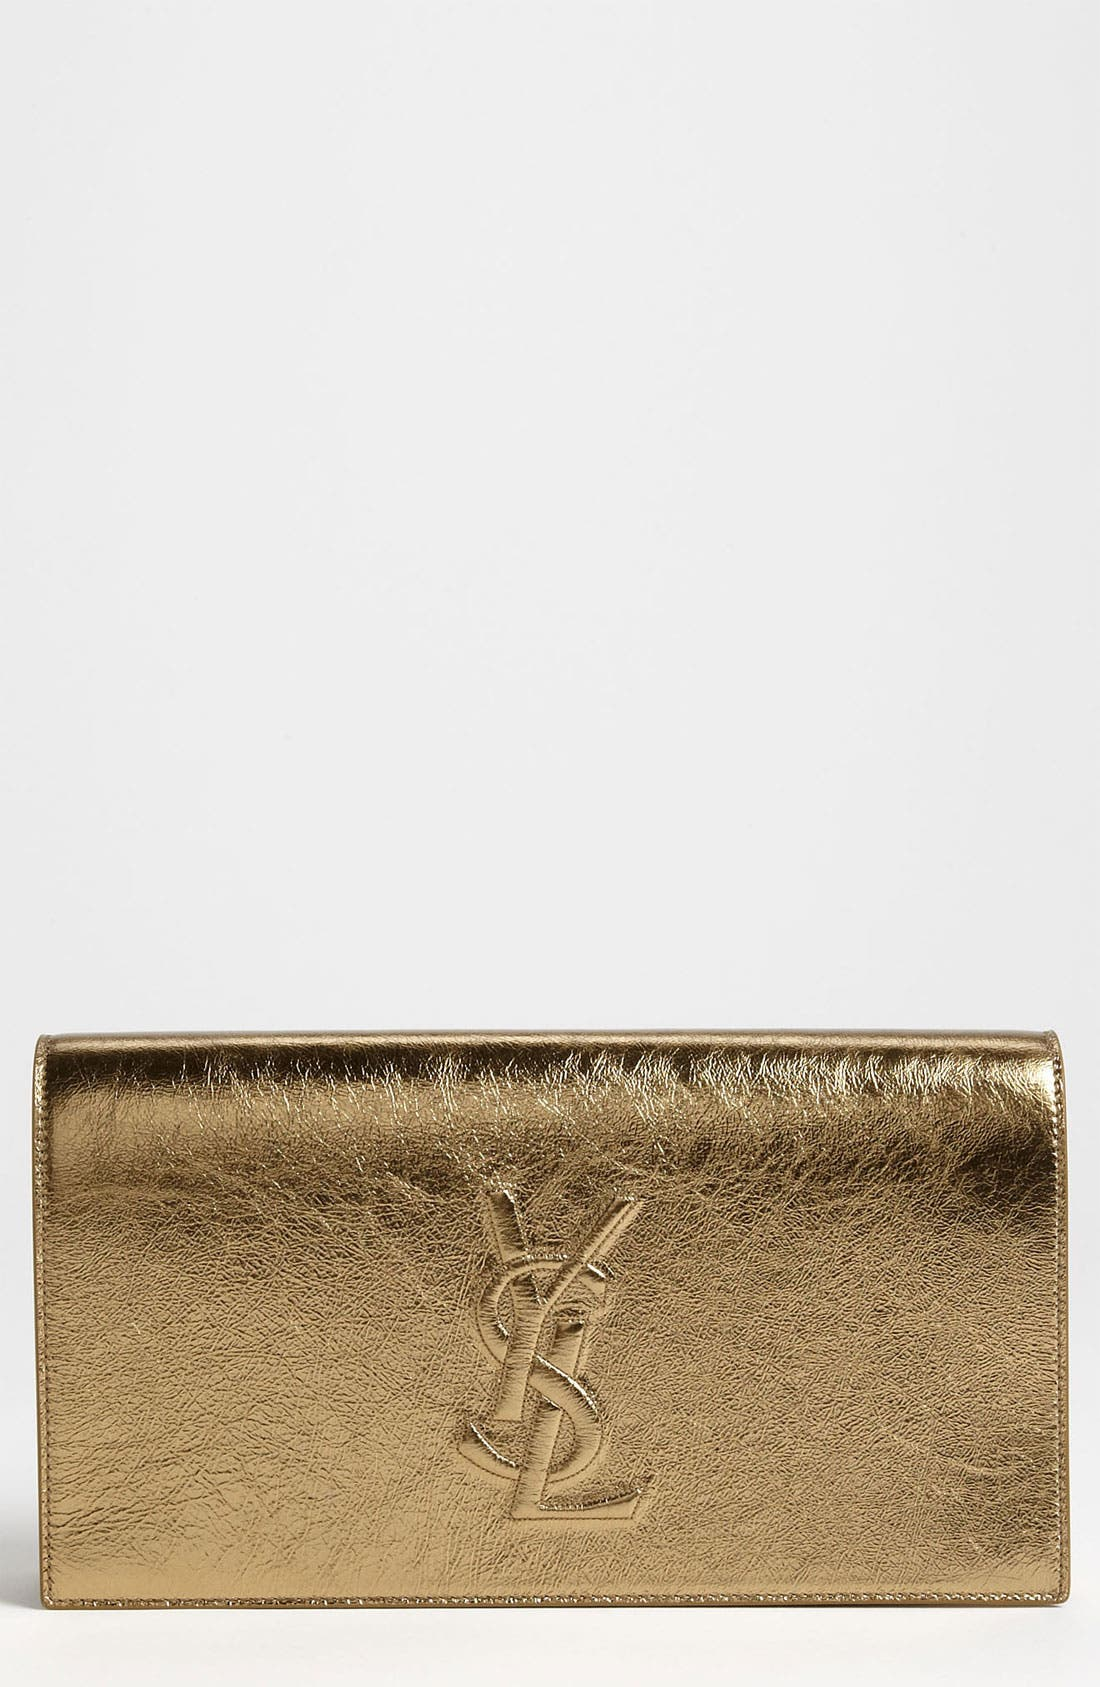 Main Image - Saint Laurent 'Belle de Jour' Metallic Leather Clutch